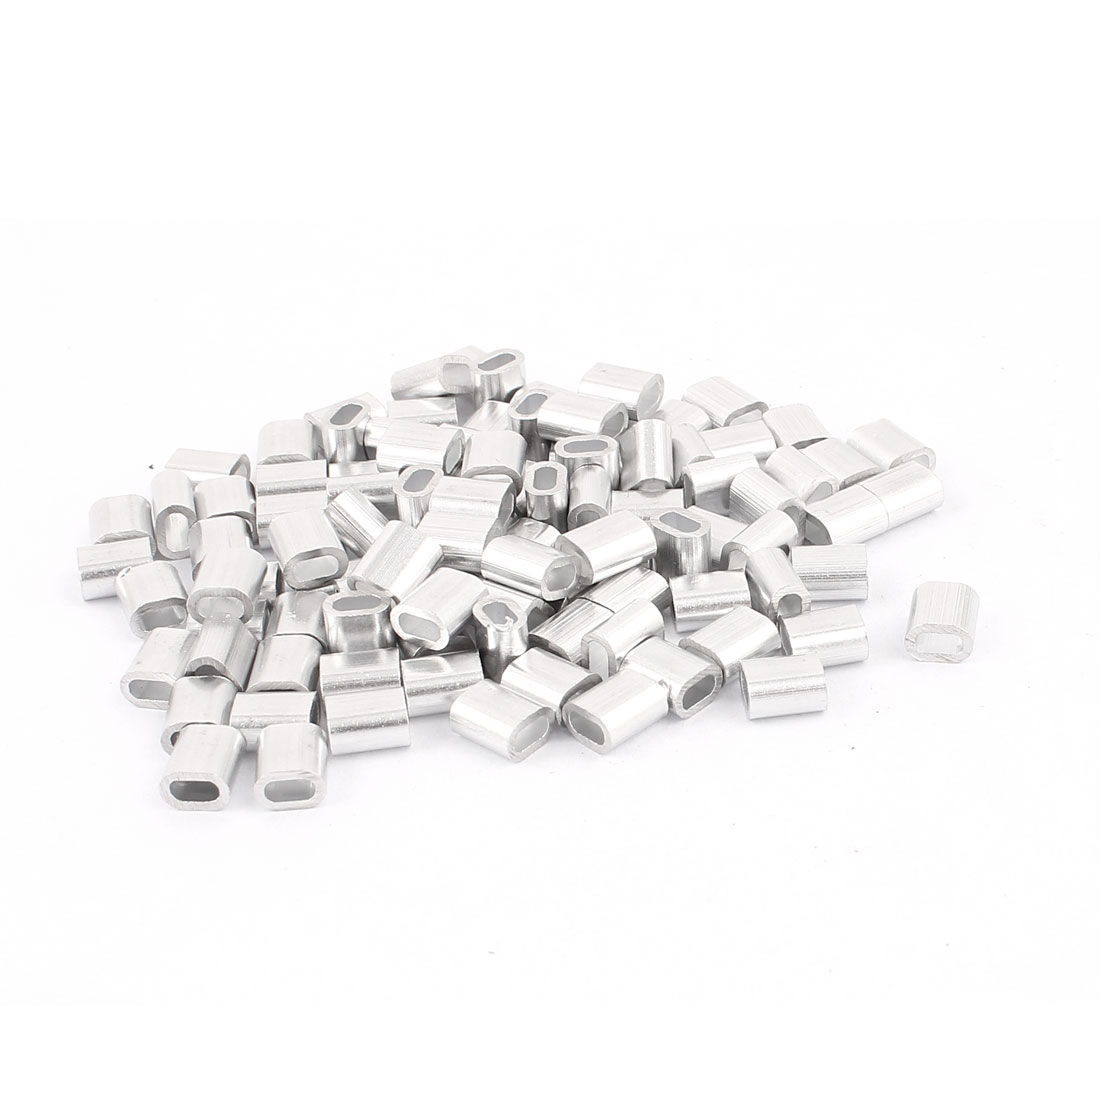 UXCELL 2Mm 5/64